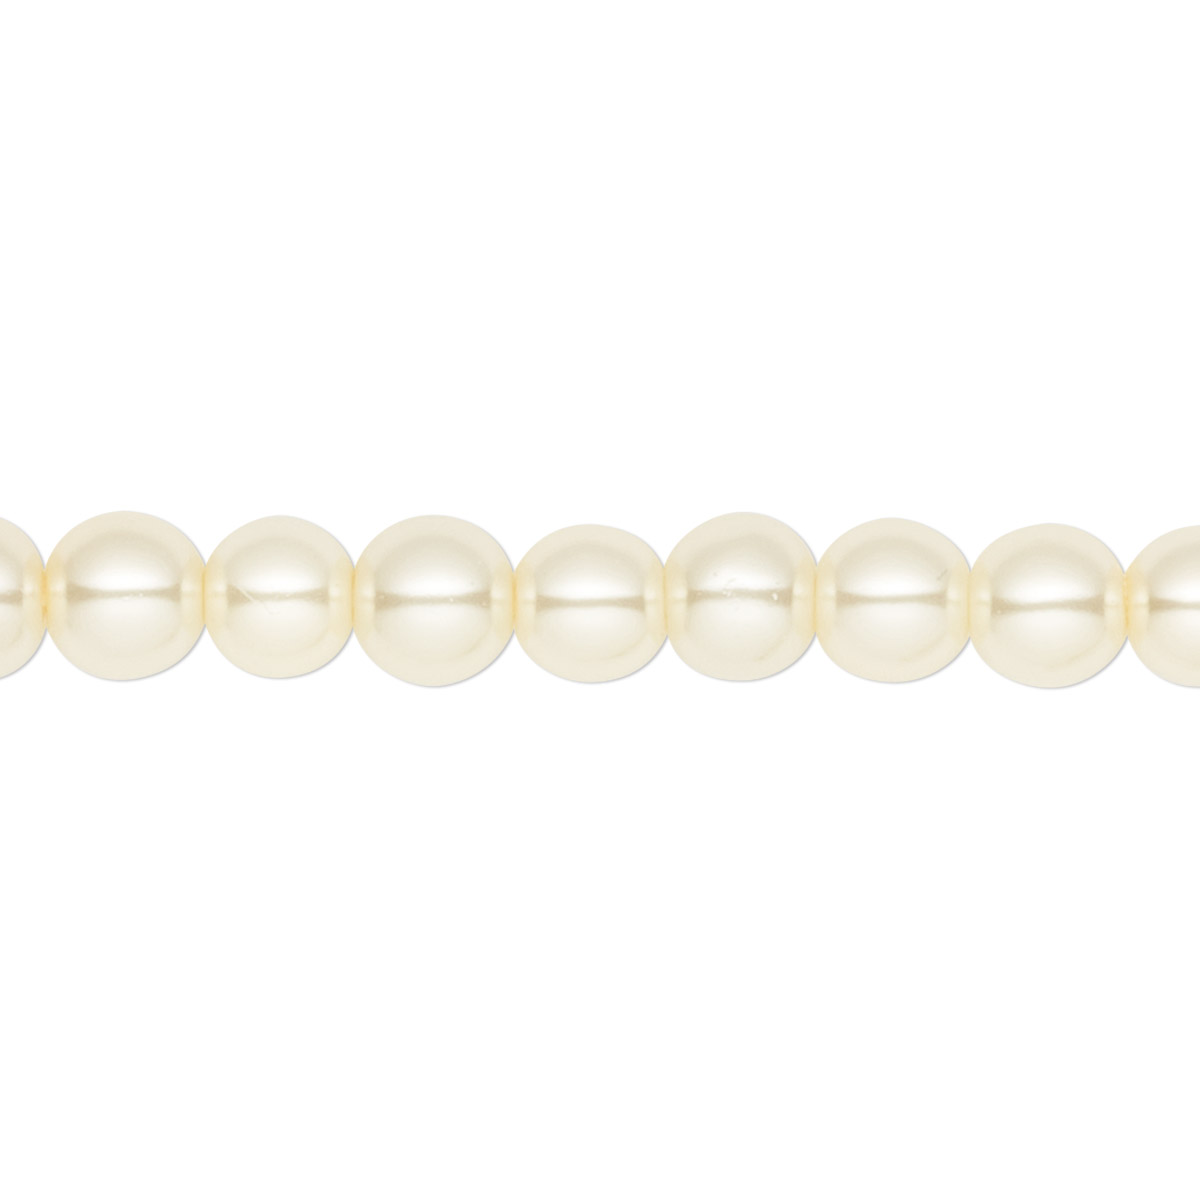 56d0fdc5e0361 Bead, Celestial Crystal®, glass pearl, ivory, 6mm round. Sold per ...